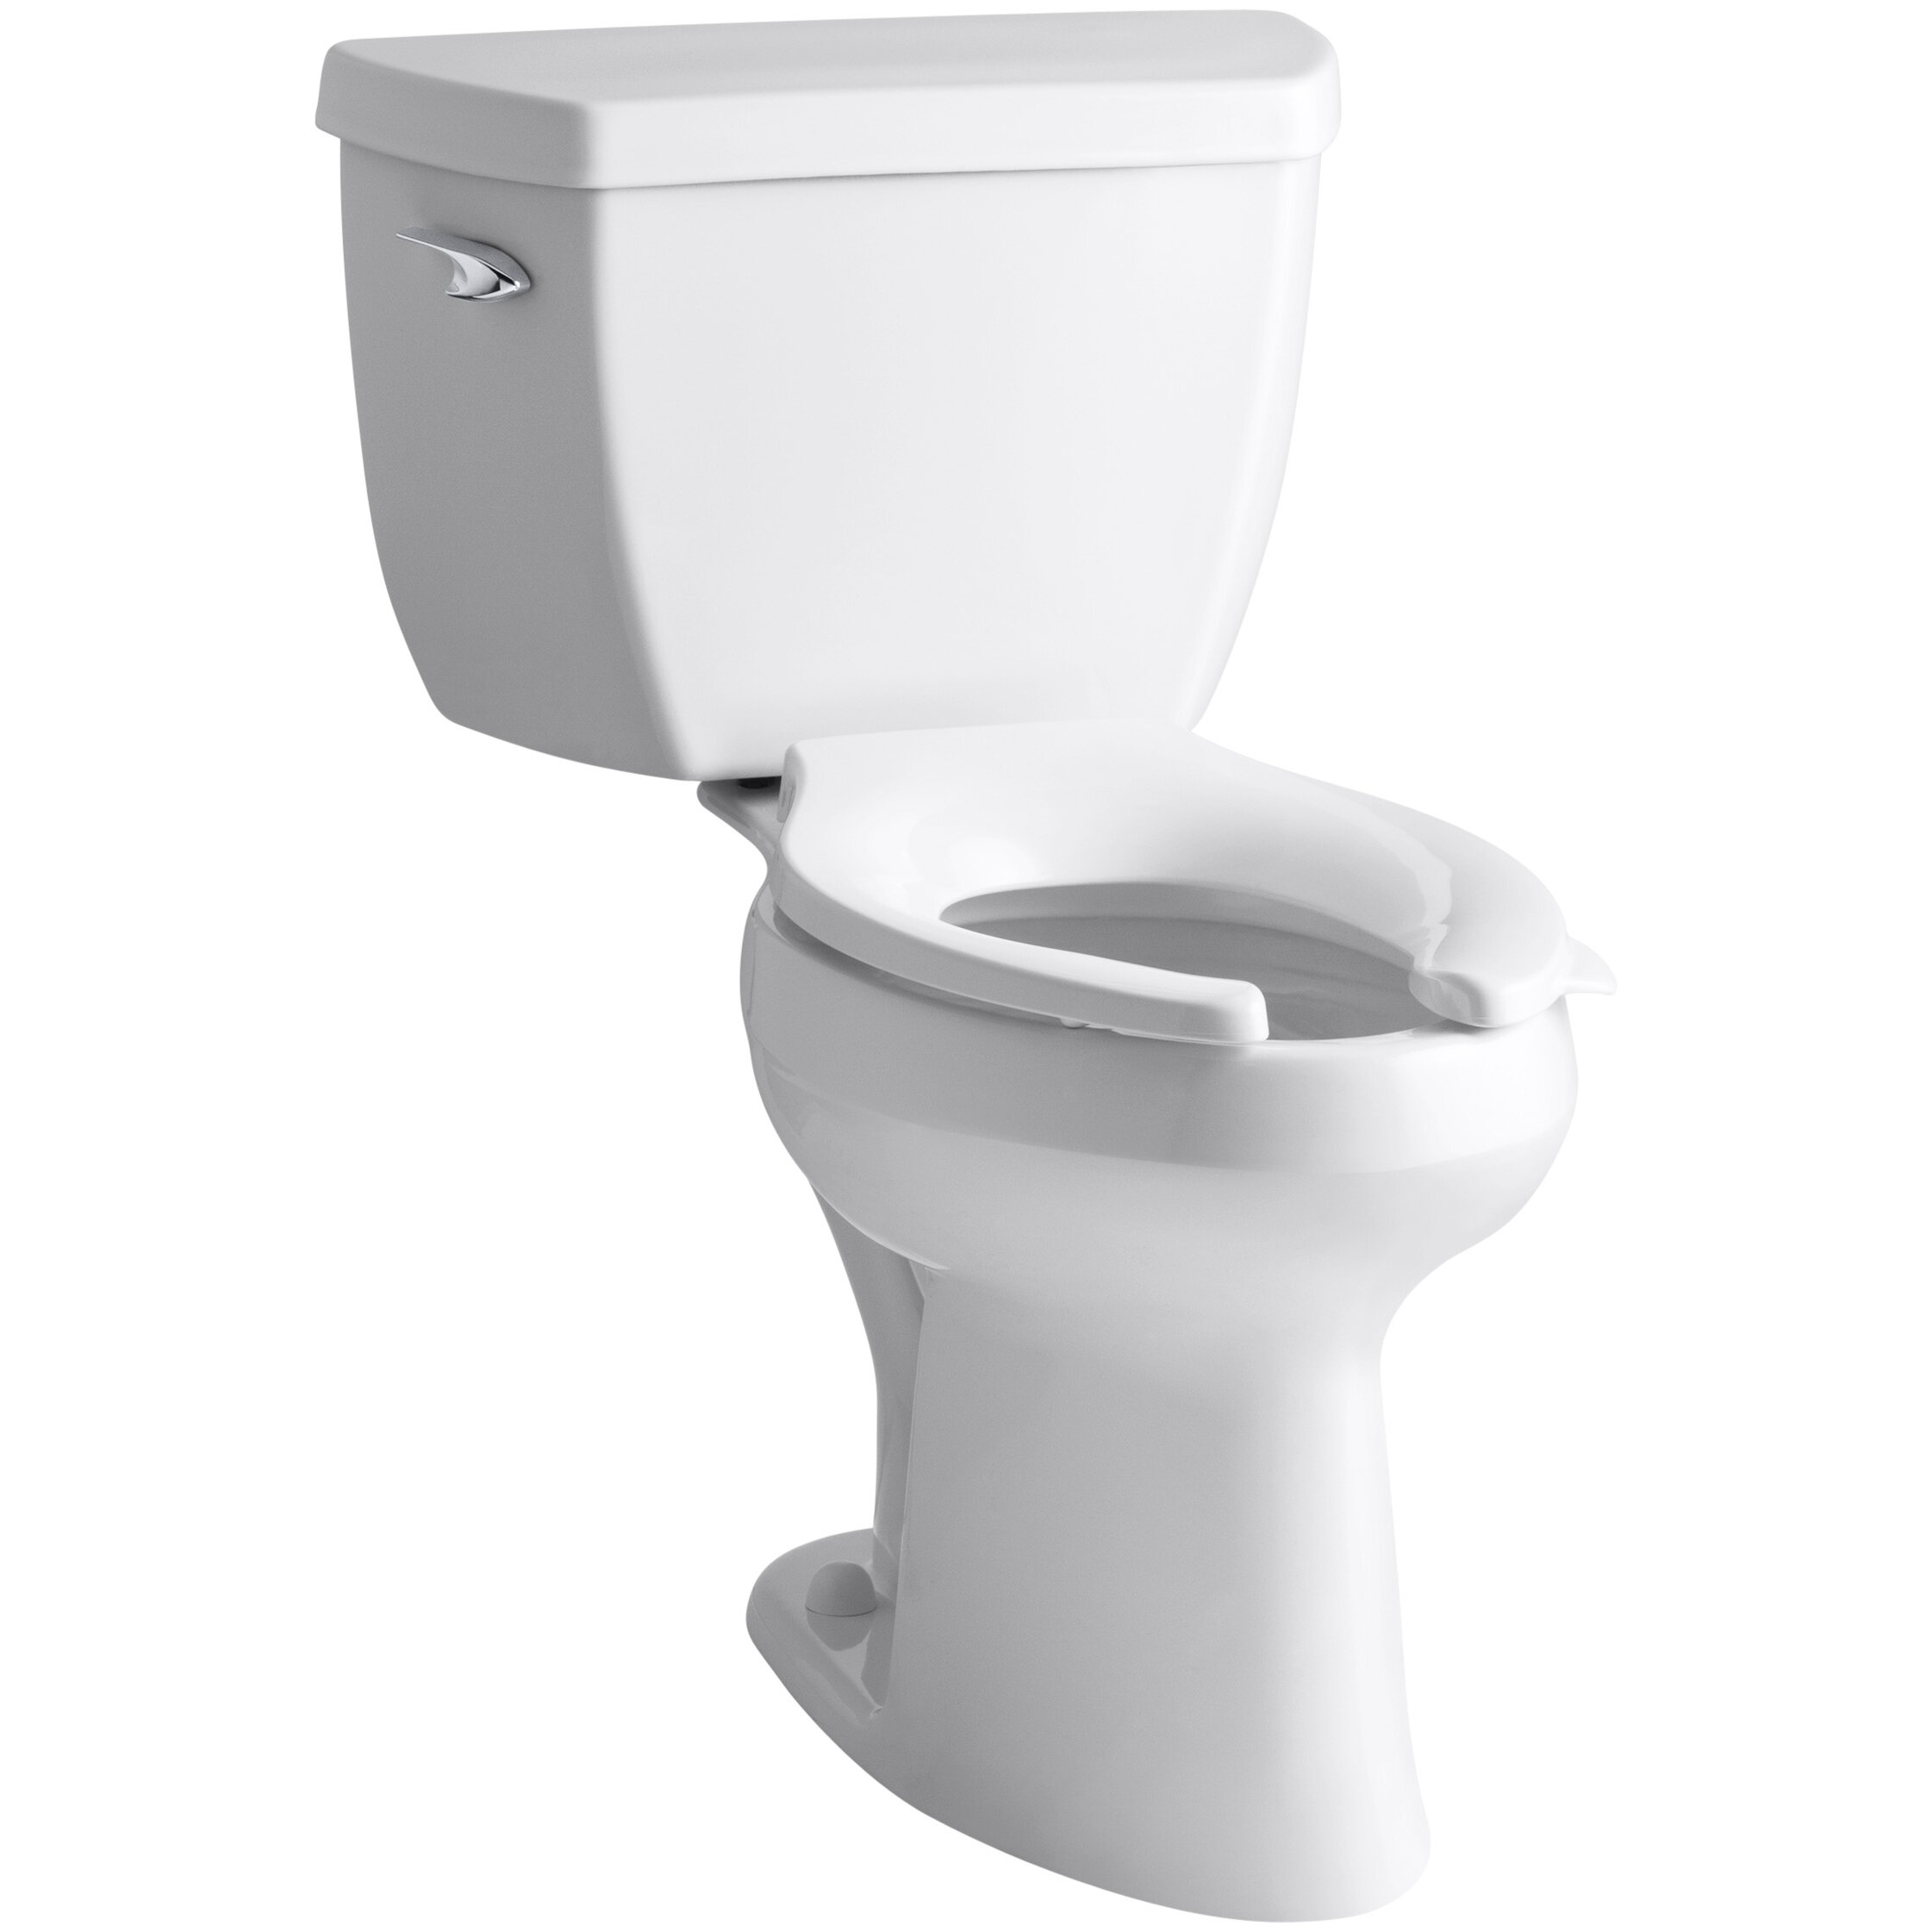 10 inch rough in toilet - Highline Classic Comfort Height Two Piece Elongated 1 6 Gpf Toilet With Pressure Lite Flush Technology